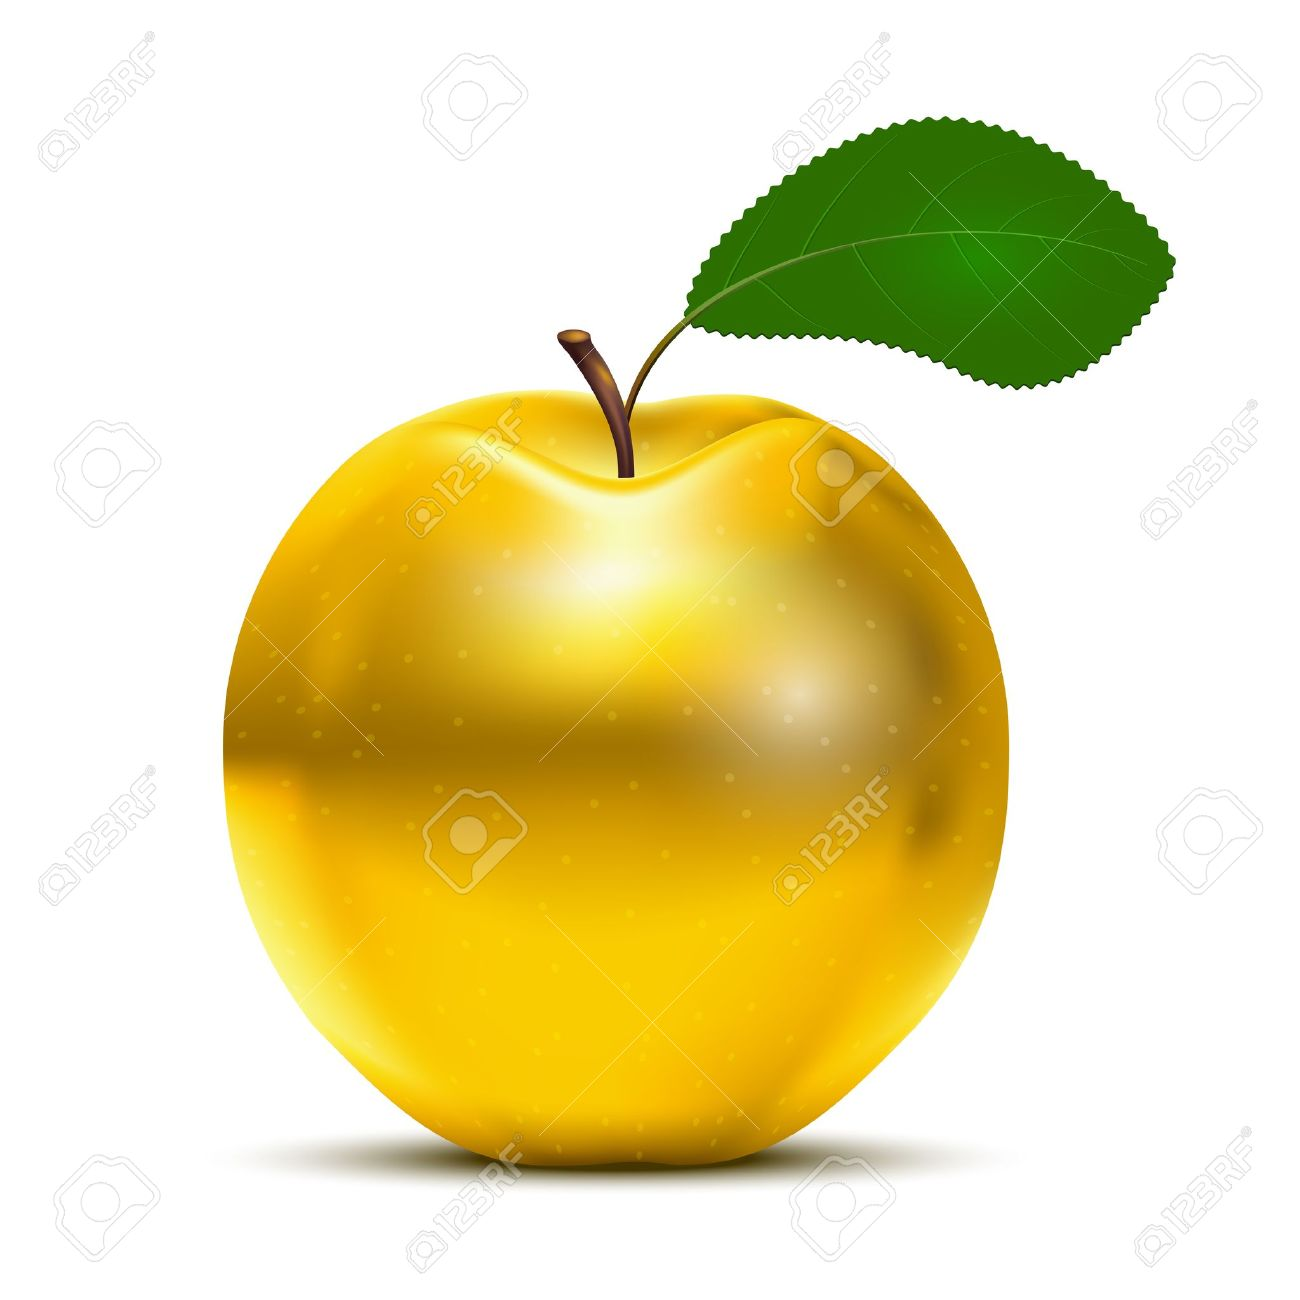 Yellow Apple Pictures